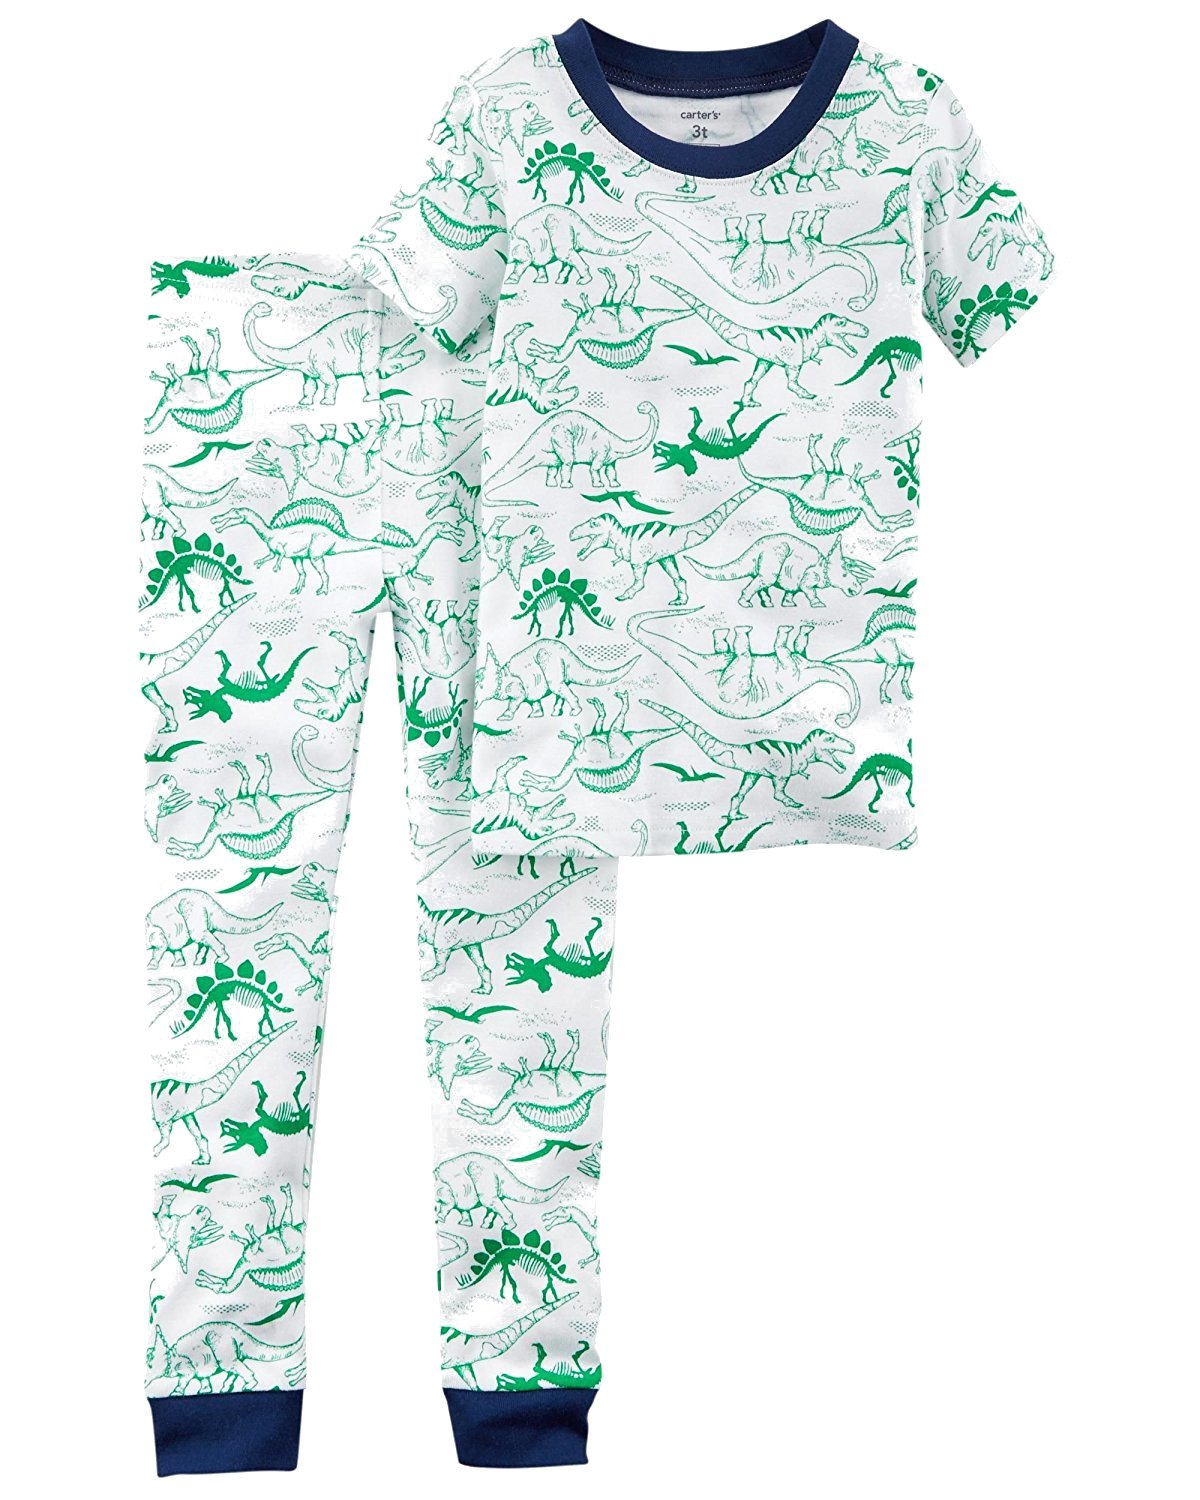 Carters Baby Toddler and Little Boys 4 Pc Short Sleeve Cotton Pajamas (5T, Green Dino and Blue Construction Trucks)